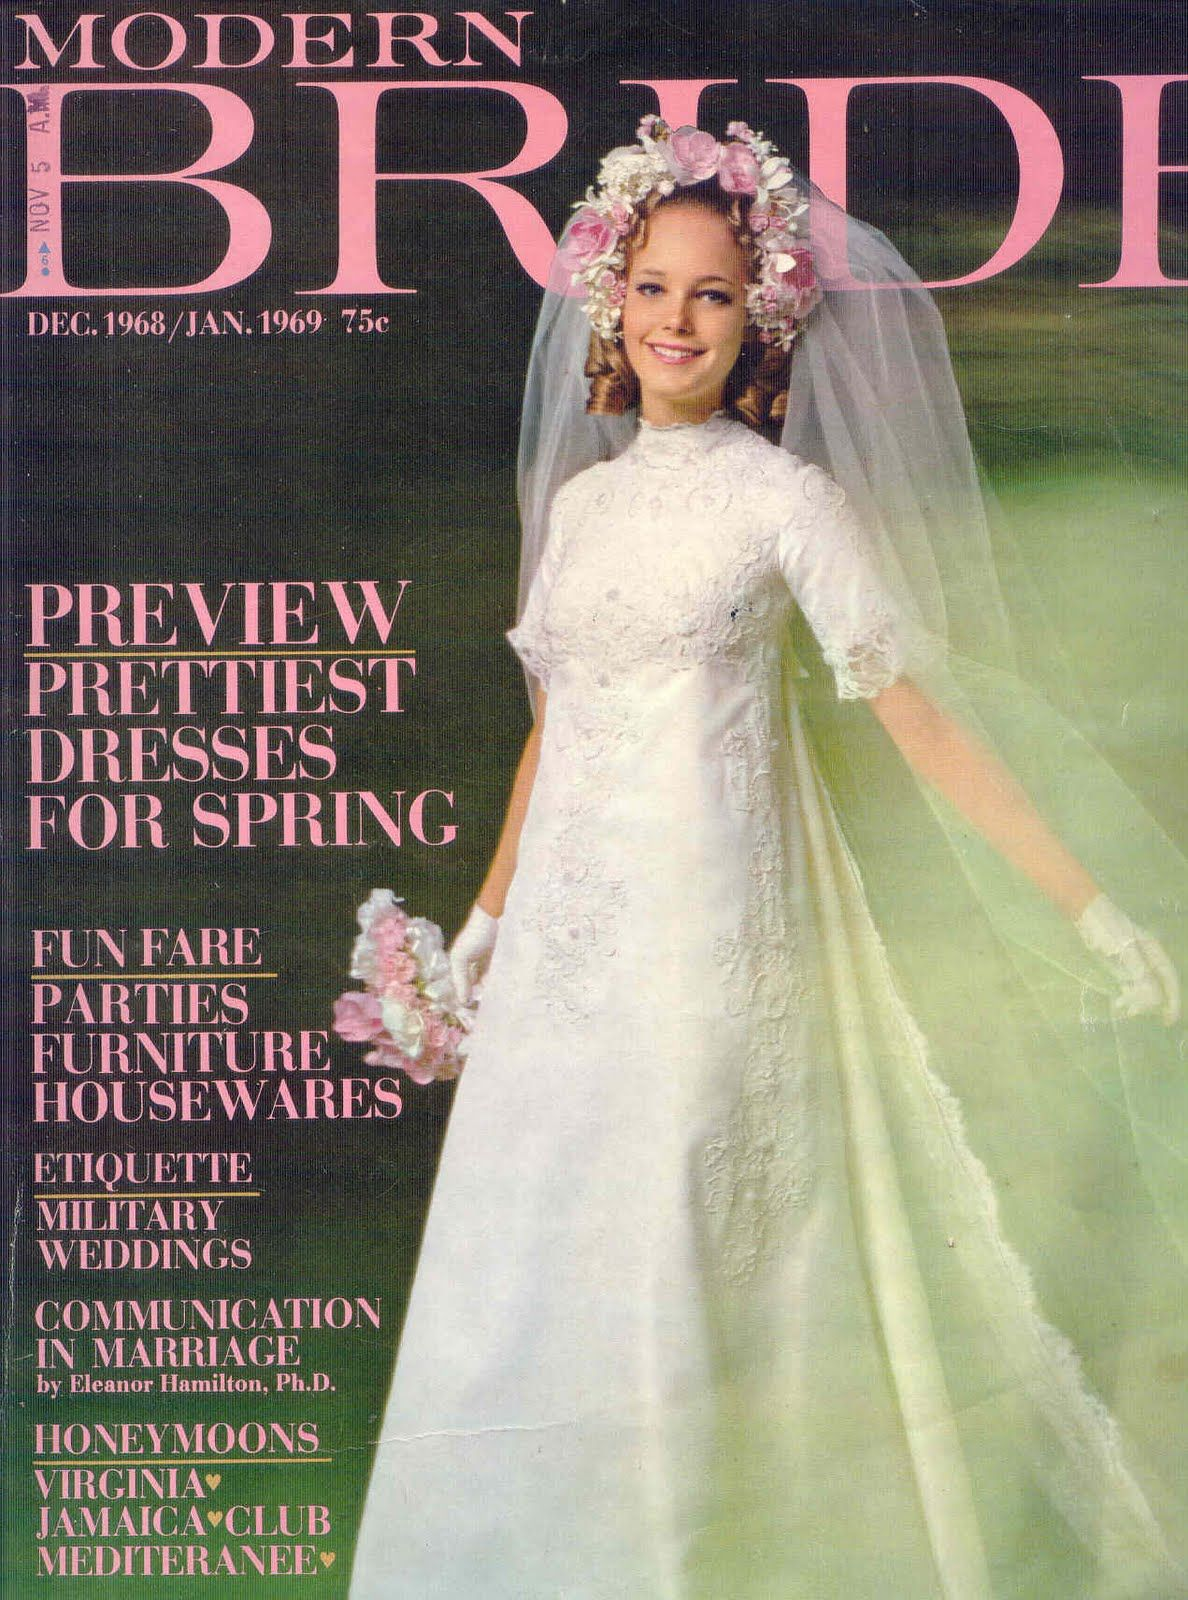 December 1968 January 1969 Modern Bride Magazine Featuring Model Lucy Angle